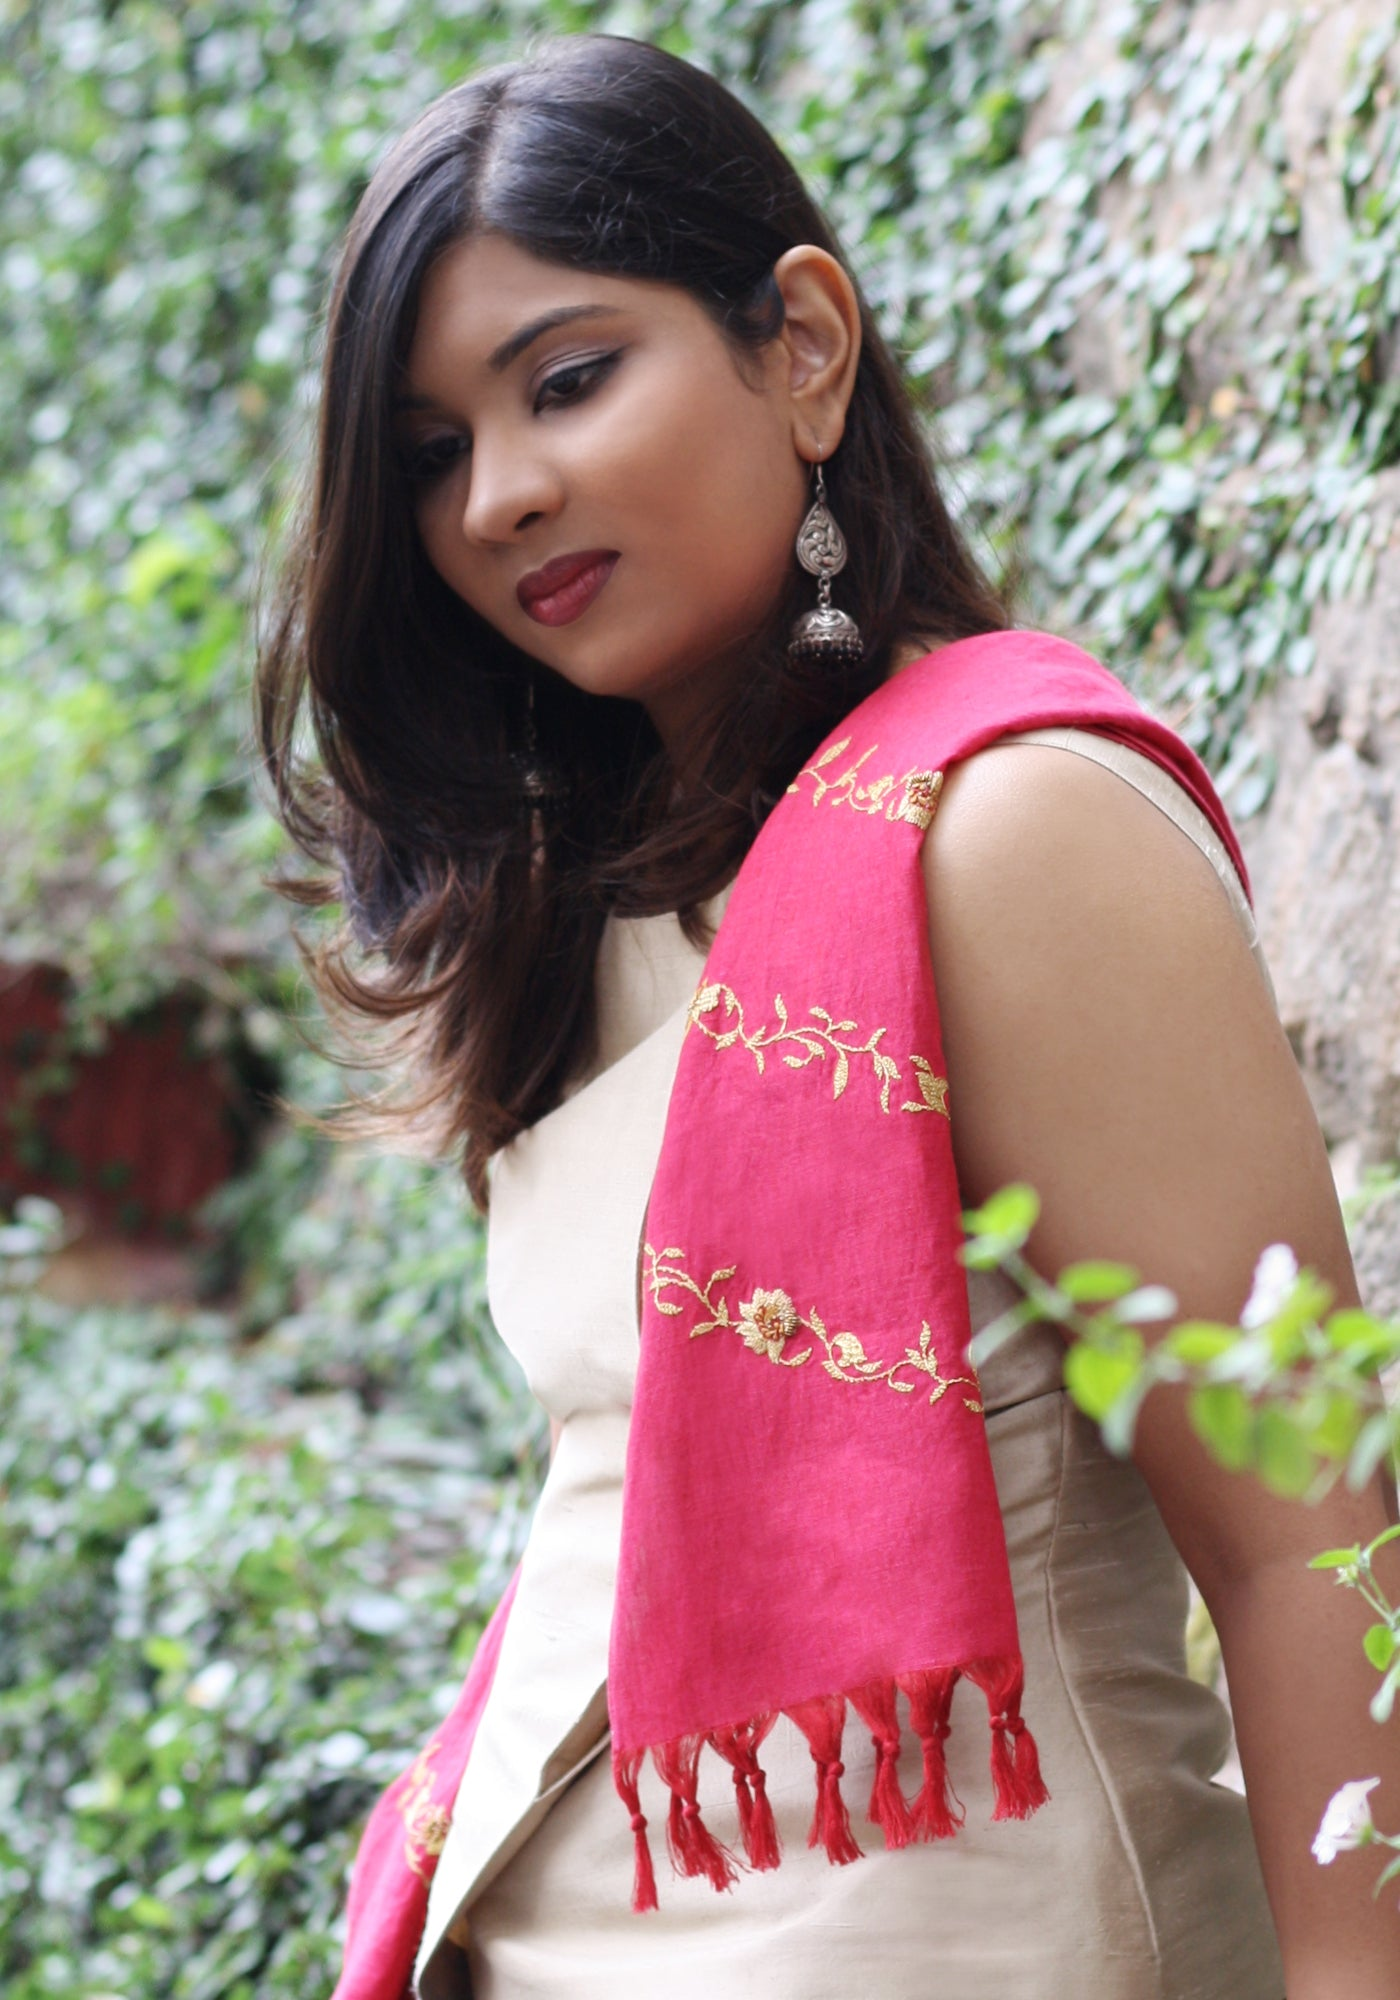 Hand Embroidered Scarf in Linen - MINC ecofashion